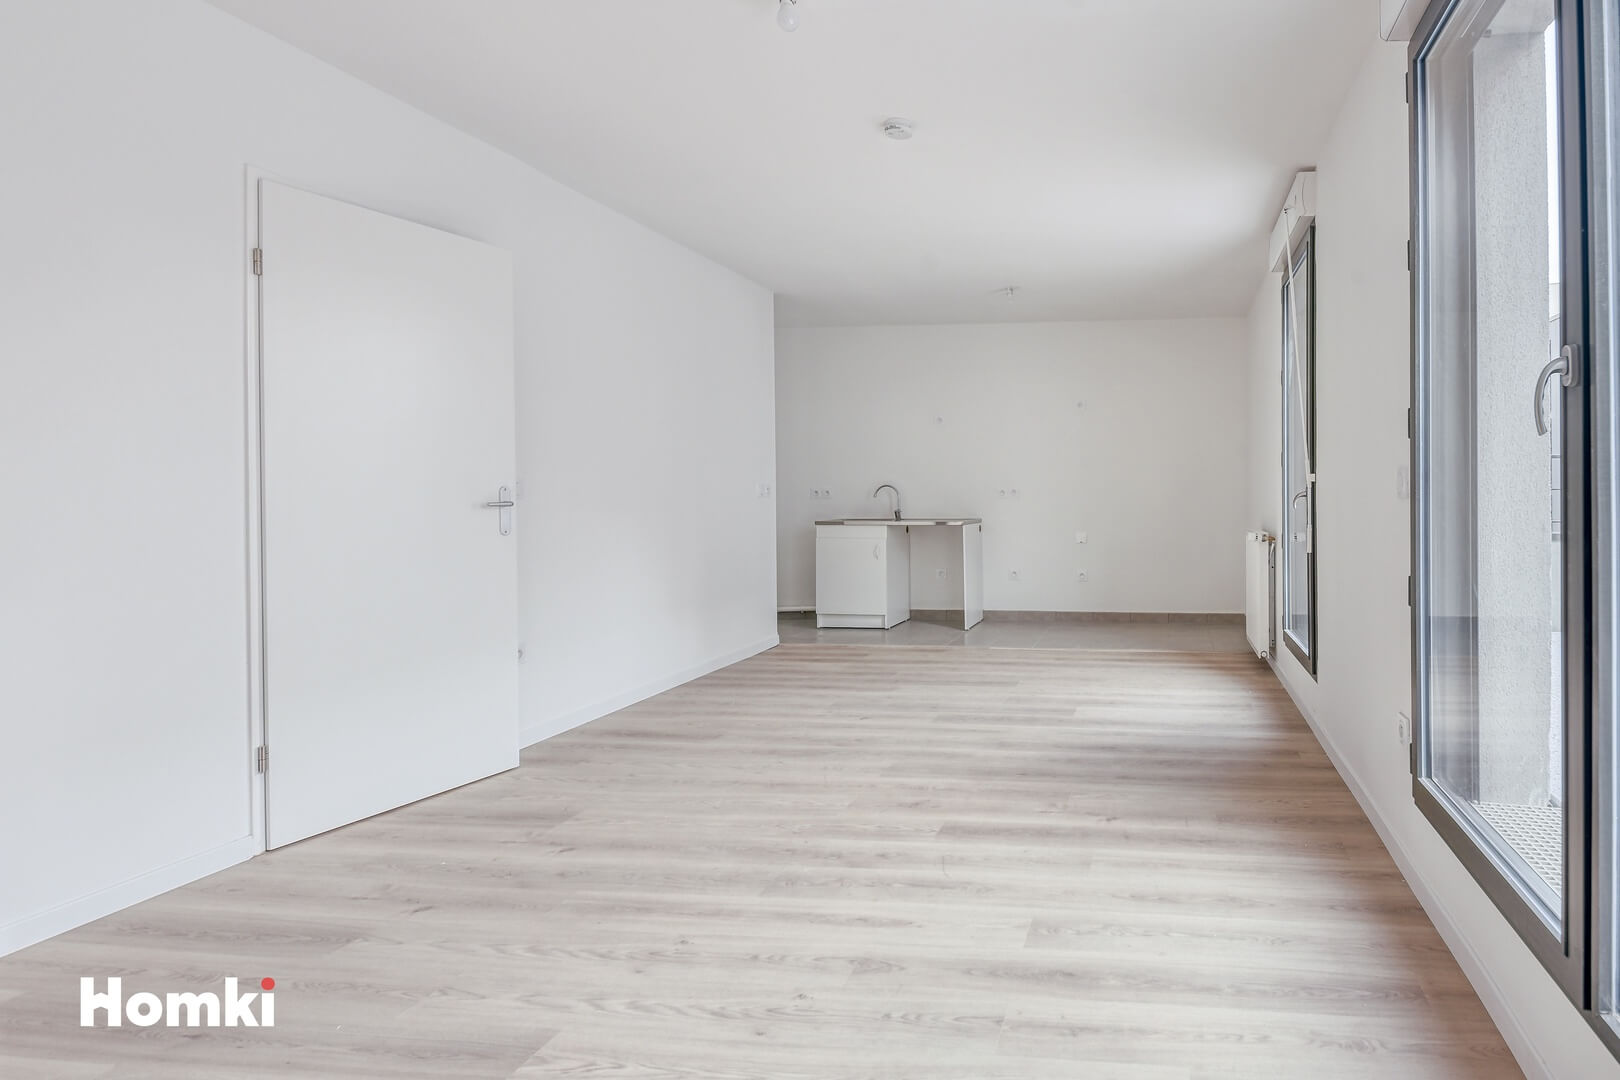 Homki - Vente Appartement  de 80.0 m² à Bordeaux 33300